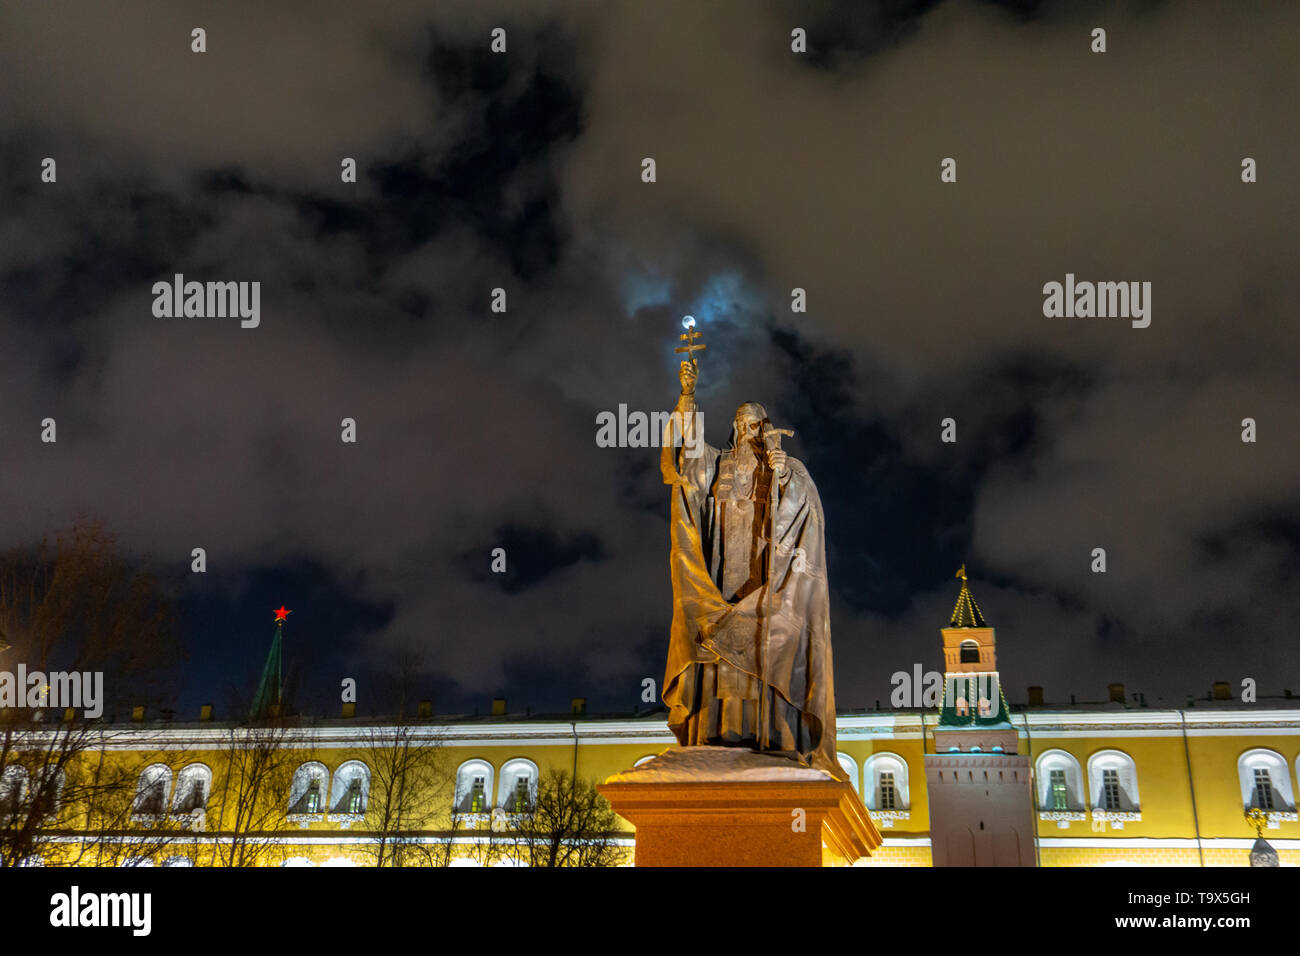 Saint statue with holding cross and on which moon shines, cloudy winter night sky, near Kremlin in Moscow - Stock Image